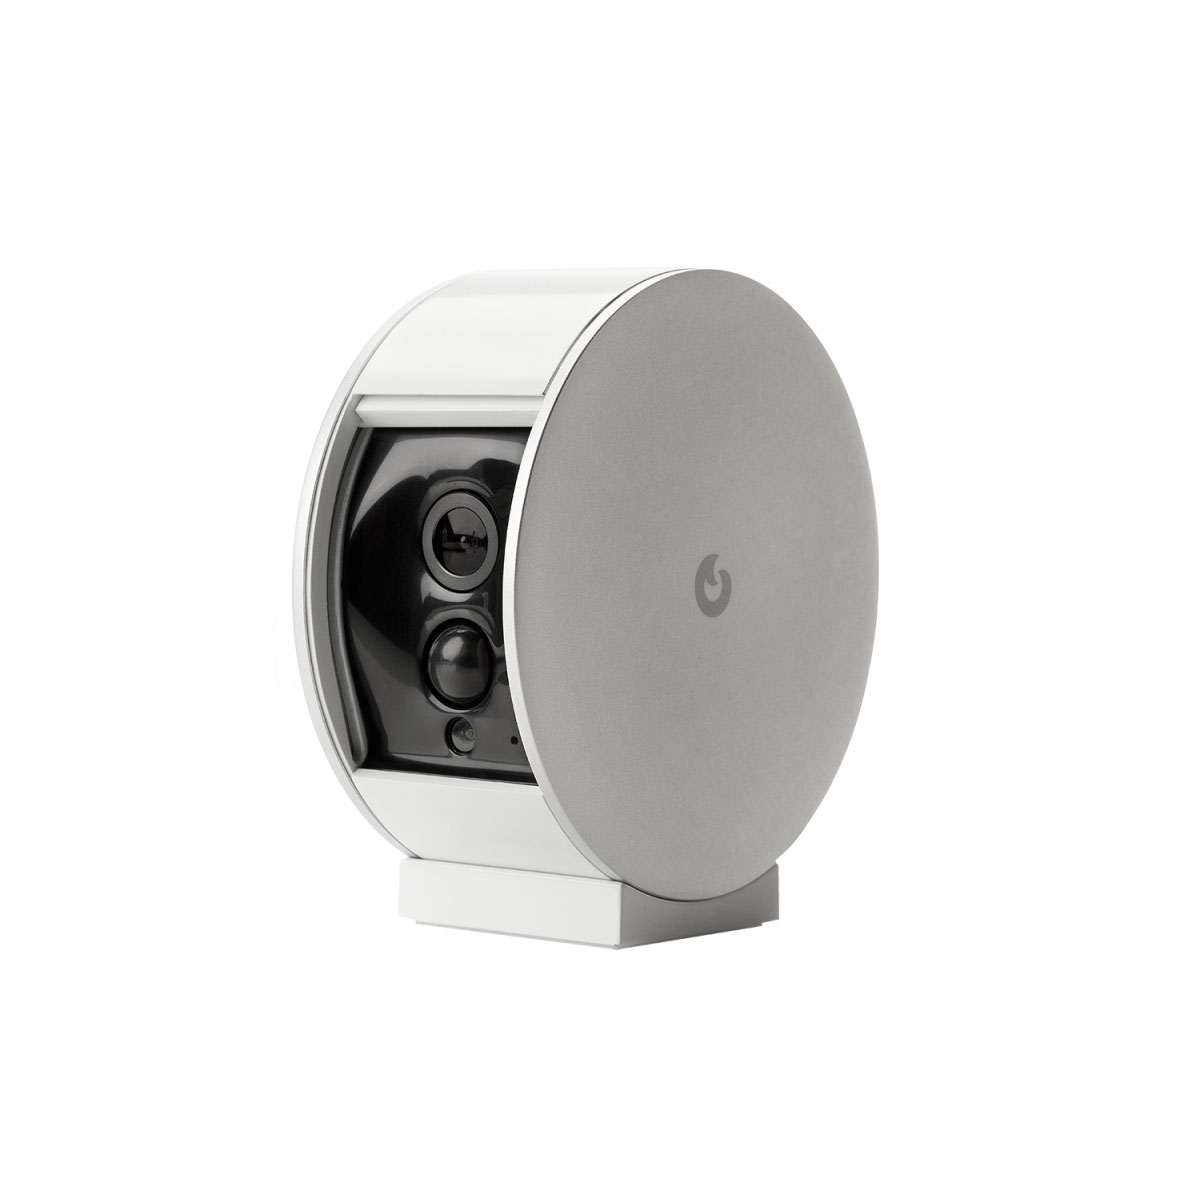 somfy security camera cam ra de surveillance somfy sur. Black Bedroom Furniture Sets. Home Design Ideas